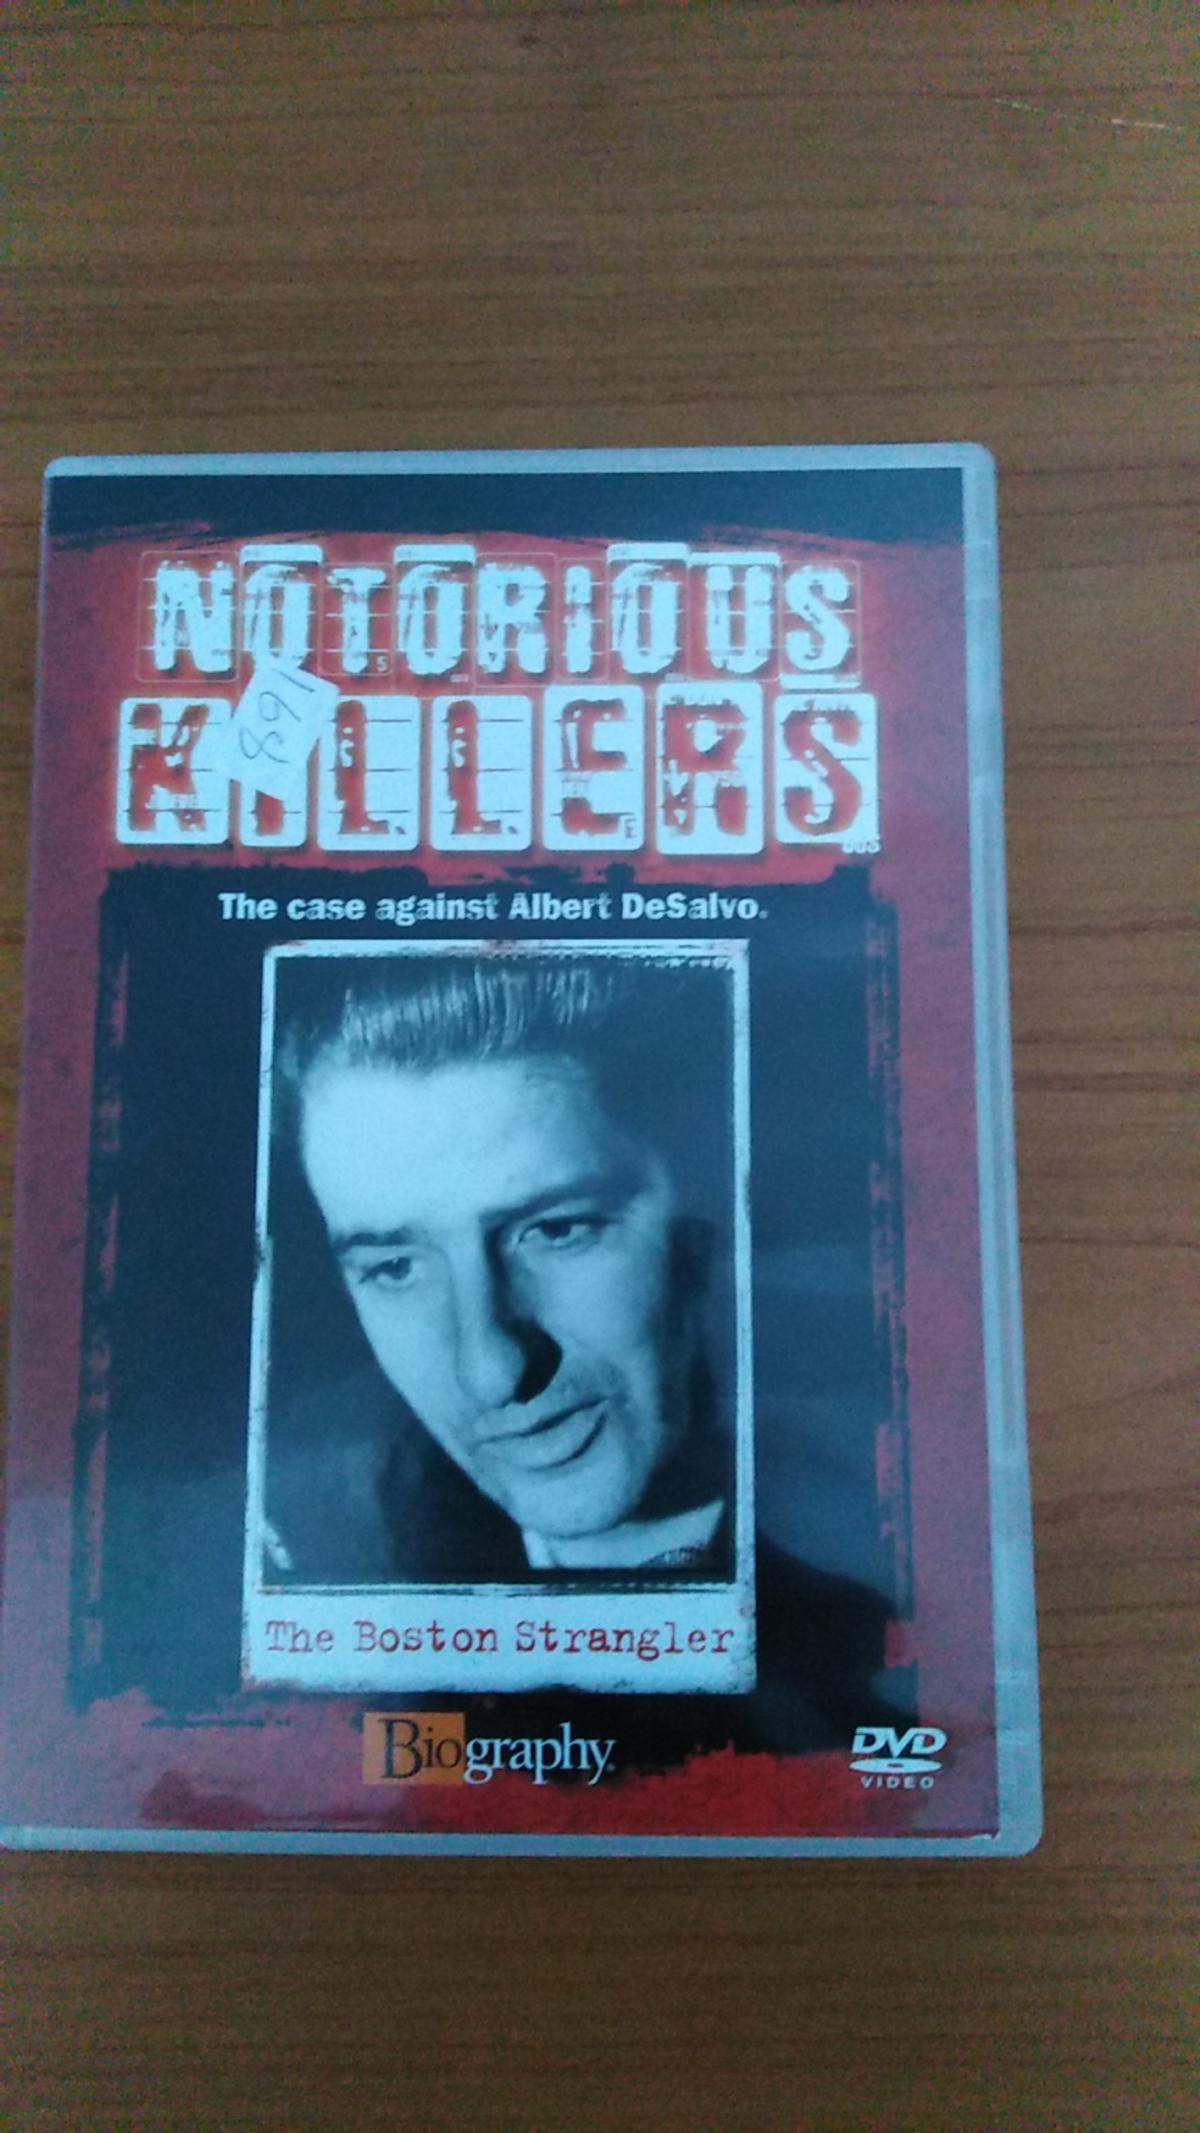 Notorious killers the Boston strangler dvd  As seen in pic Sold as seen  £1  Collection from Sutton-in-Ashfield No posting